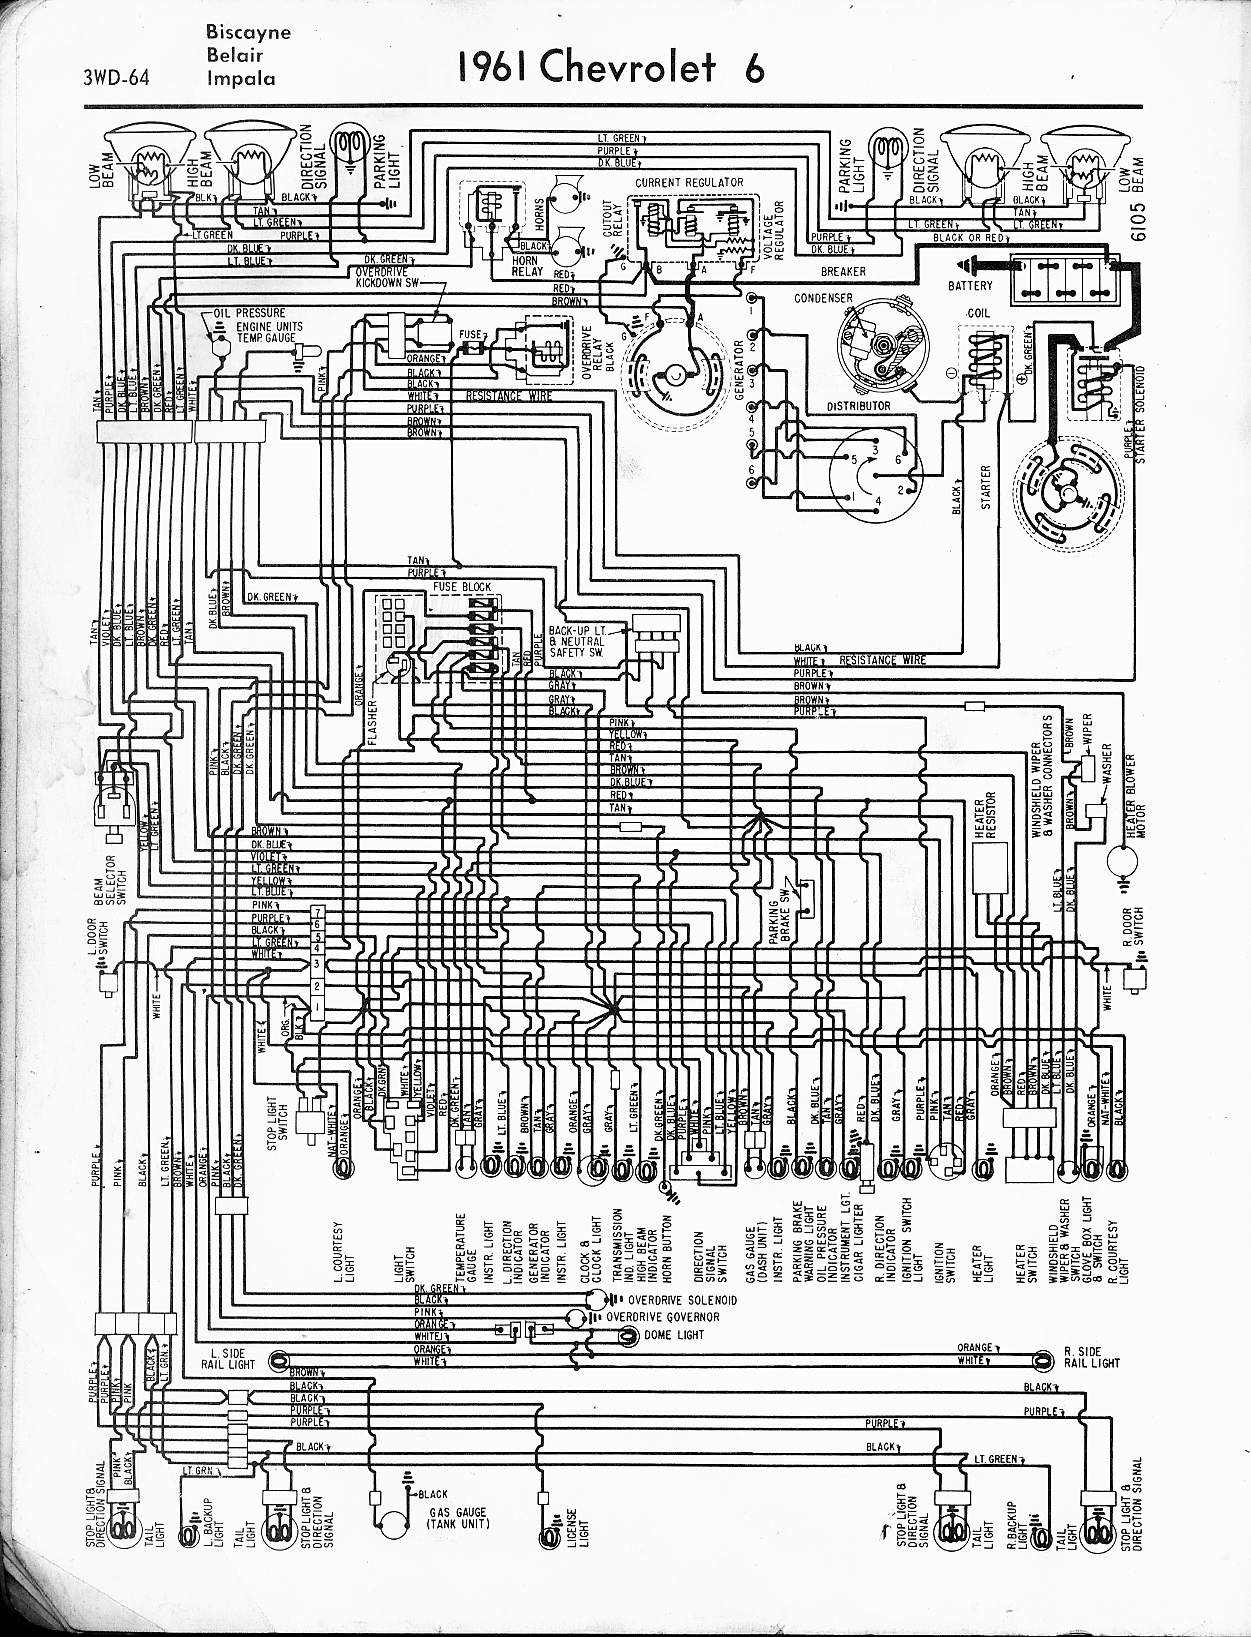 1963 corvair ignition diagram wiring schematic wiring diagram library rh 73 desa penago1 com